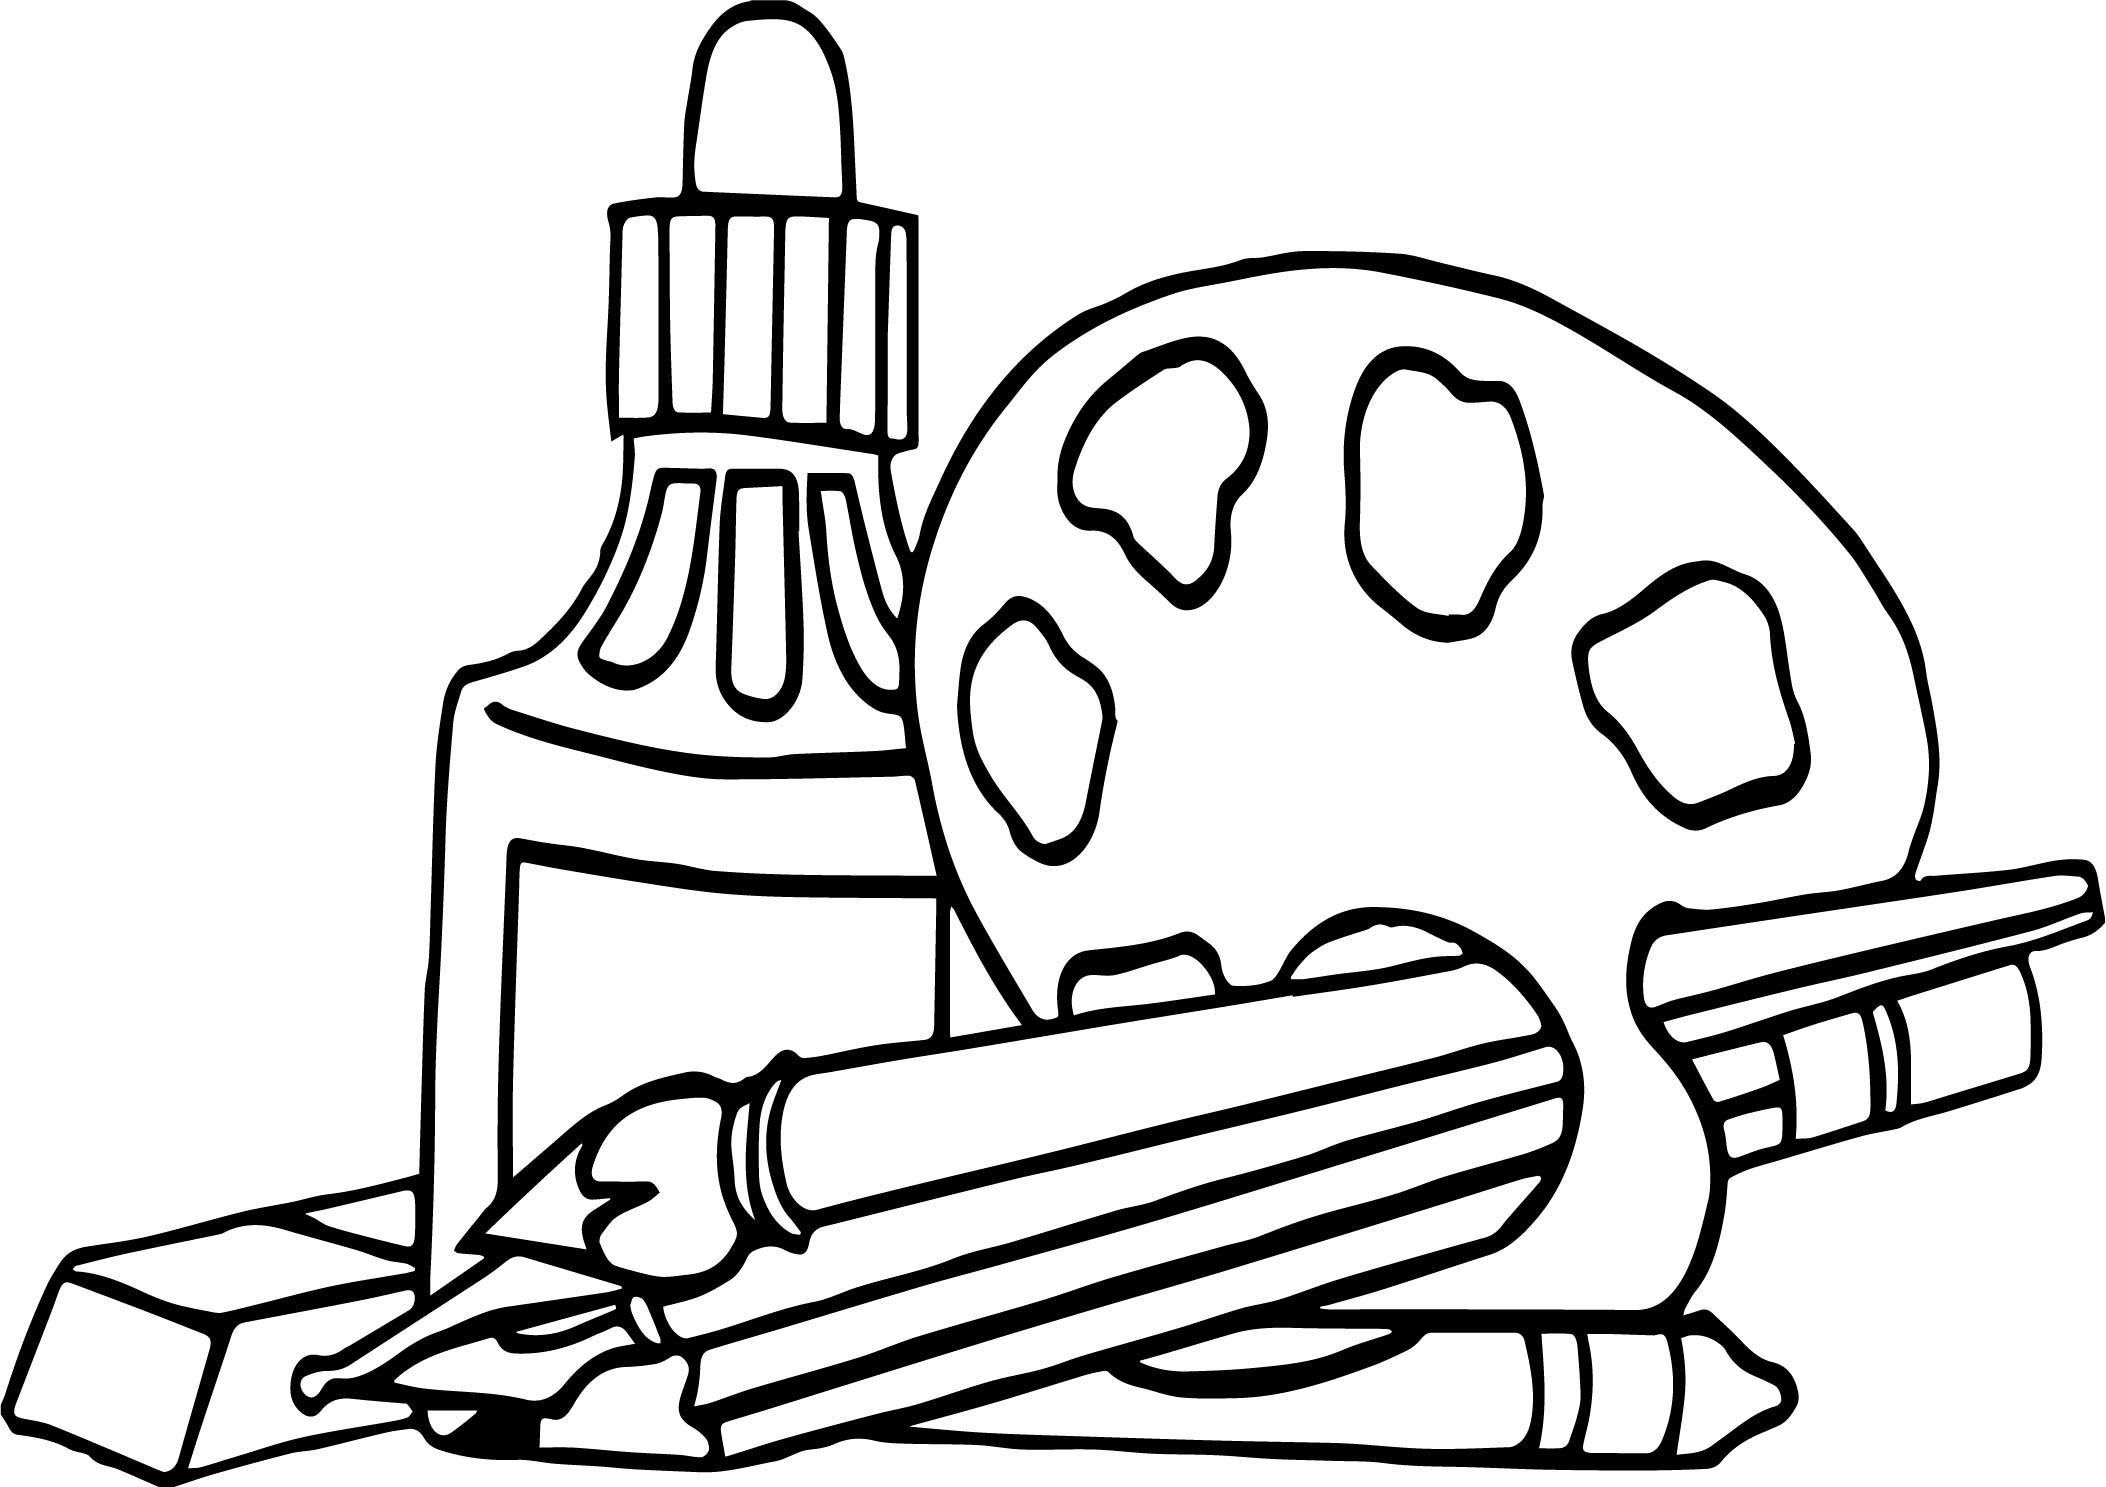 coloring art kit 56 best adult coloring pages images on pinterest coloring art kit